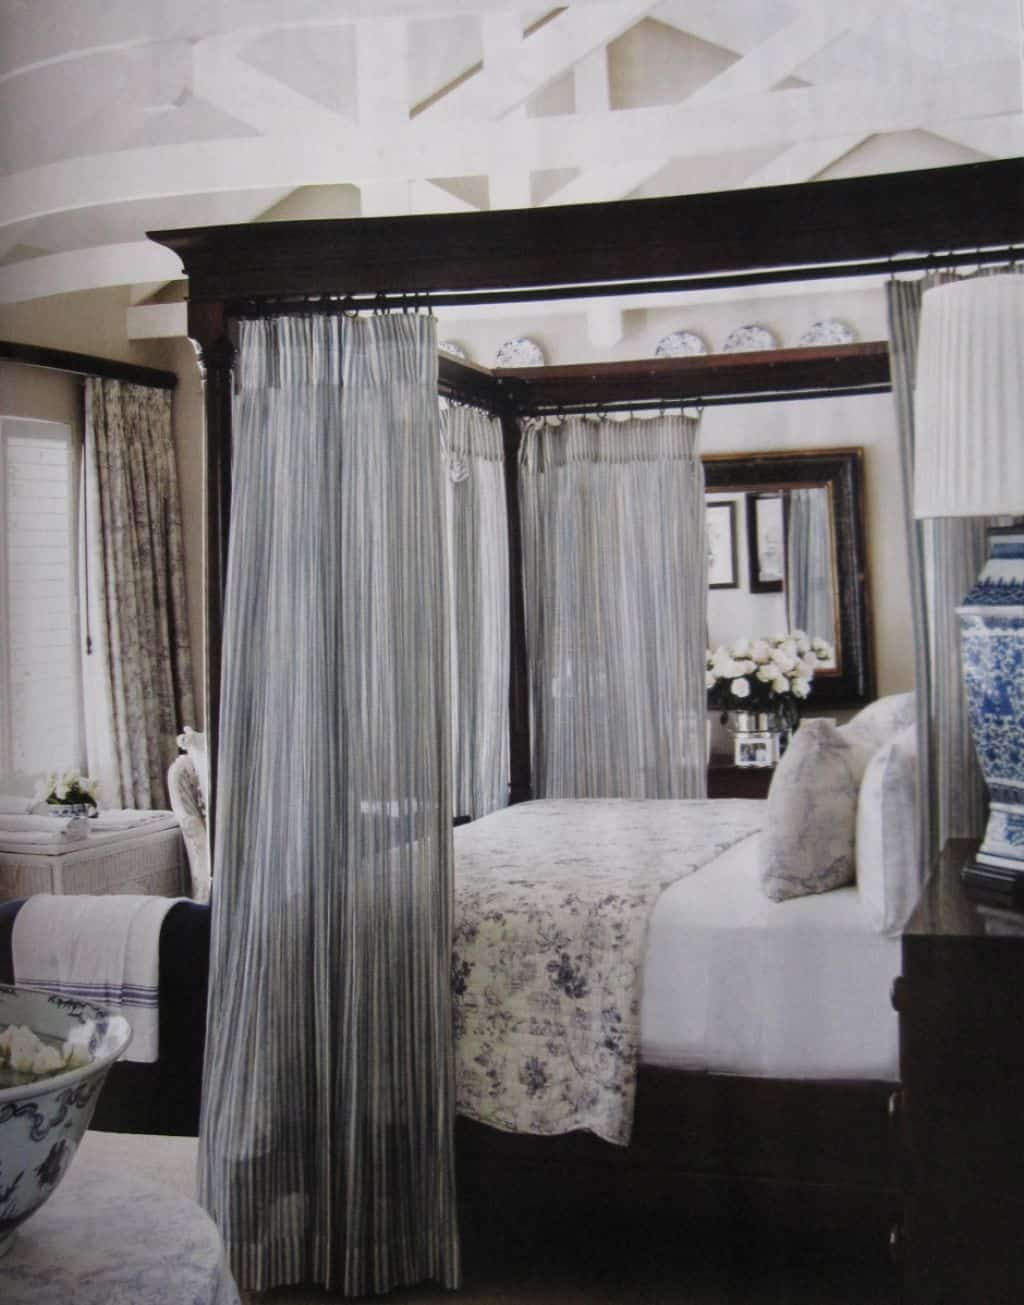 Queen Sized Canopy Bed With Curtains Hang Curtains In A Canopy Bed Layjao